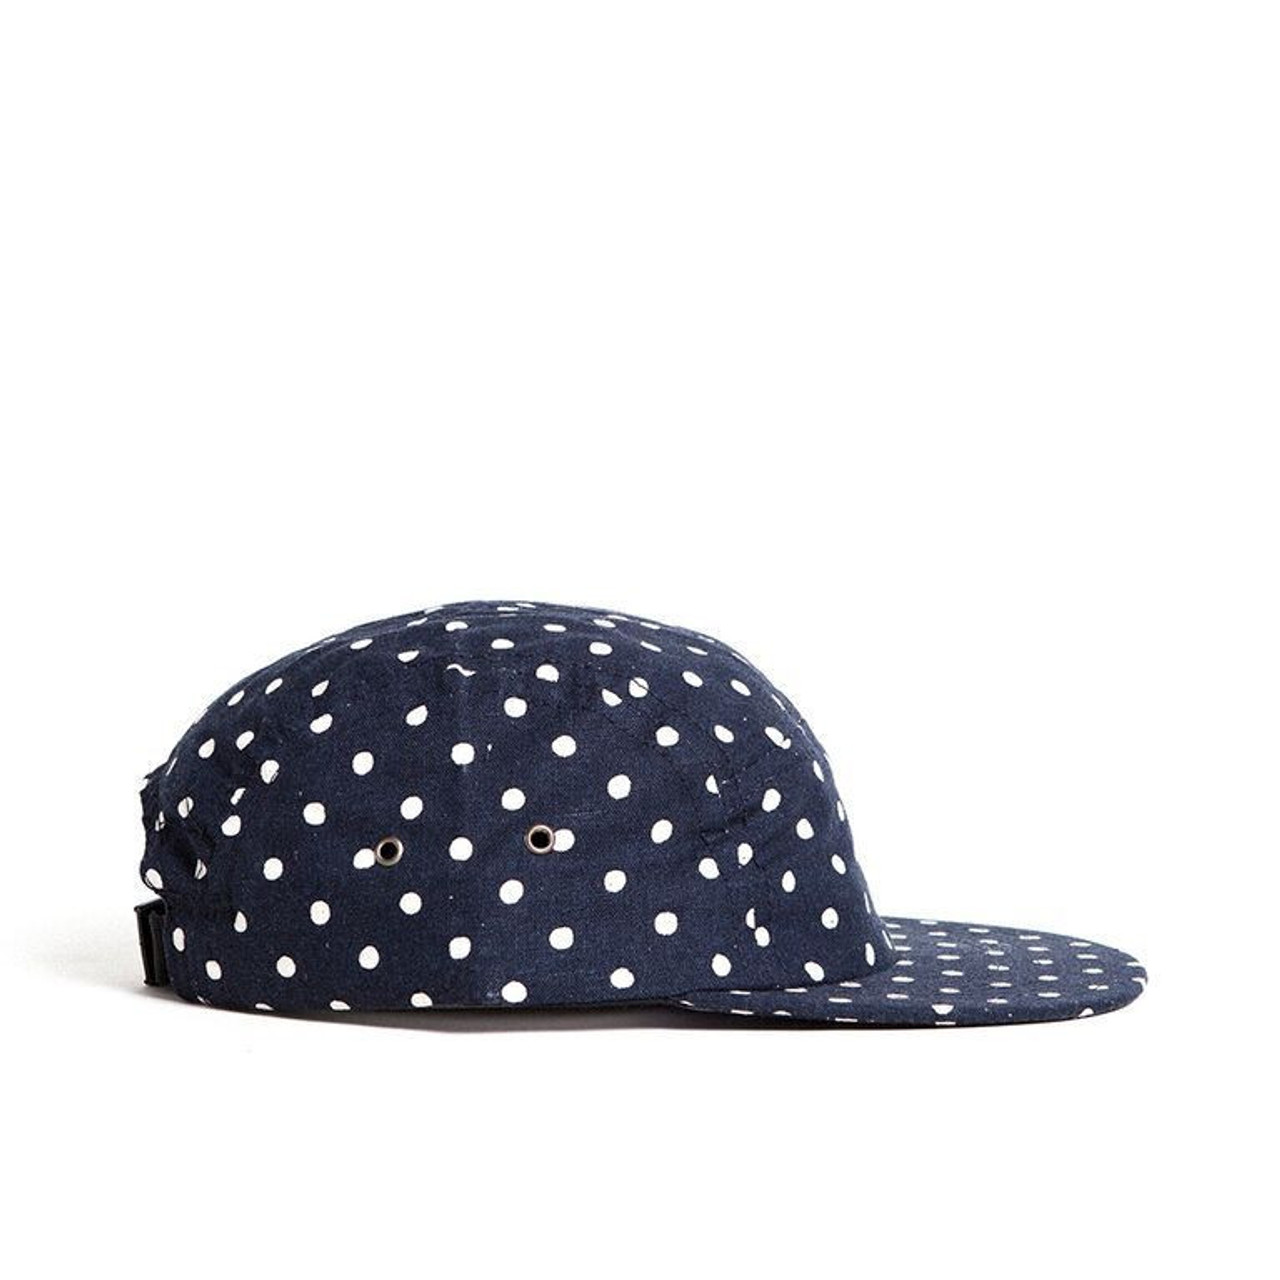 Indigo Polka Dot Youth Camp Cap